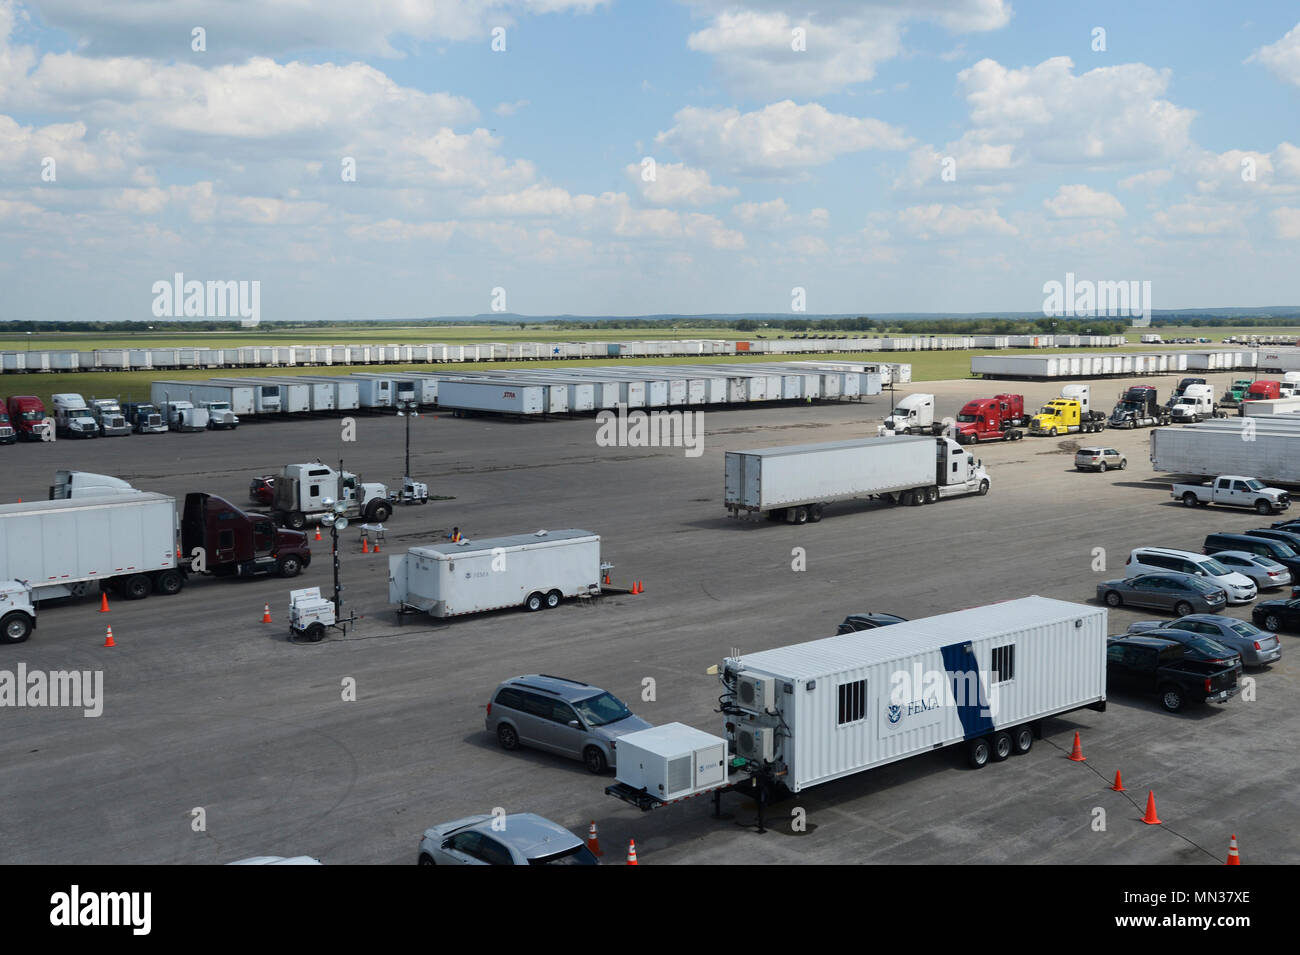 Supplies loaded into trailers are staged for Hurricane Harvey disaster-relief efforts at JBSA Randolph auxiliary airfield, Seguin, Texas, August 30, 2017. The category-4 hurricane, with wind speeds of 130 mph, made landfall August 25, 2017.  Days after the hurricane reached Texas, more than 50 inches of rain flooded the coastal region. (U.S. Air Force Photo by Tech. Sgt. Chad Chisholm/Released) Stock Photo